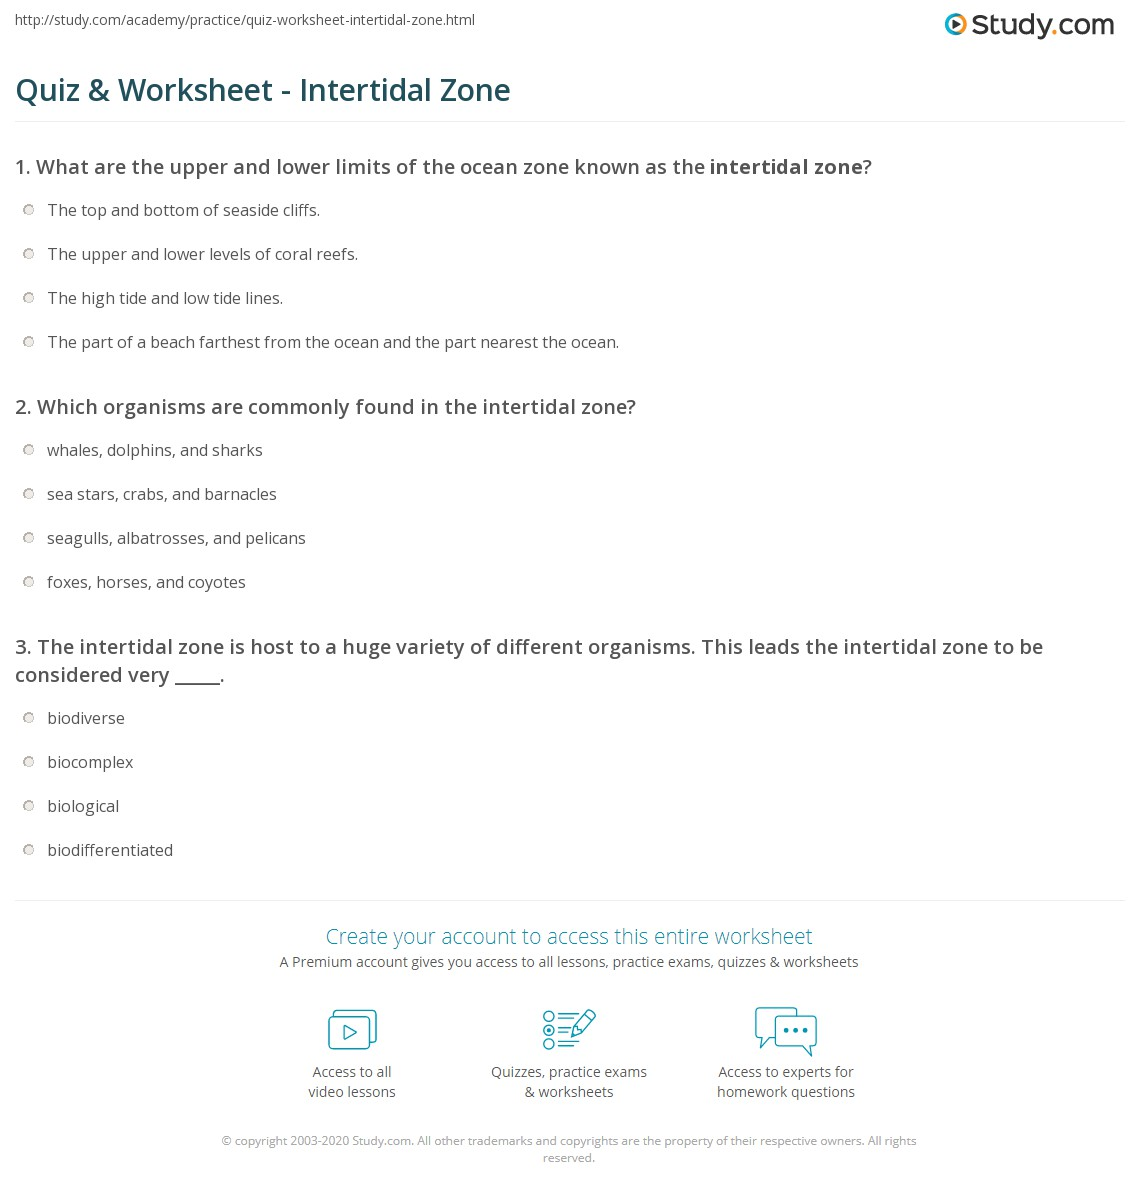 quiz & worksheet - intertidal zone | study